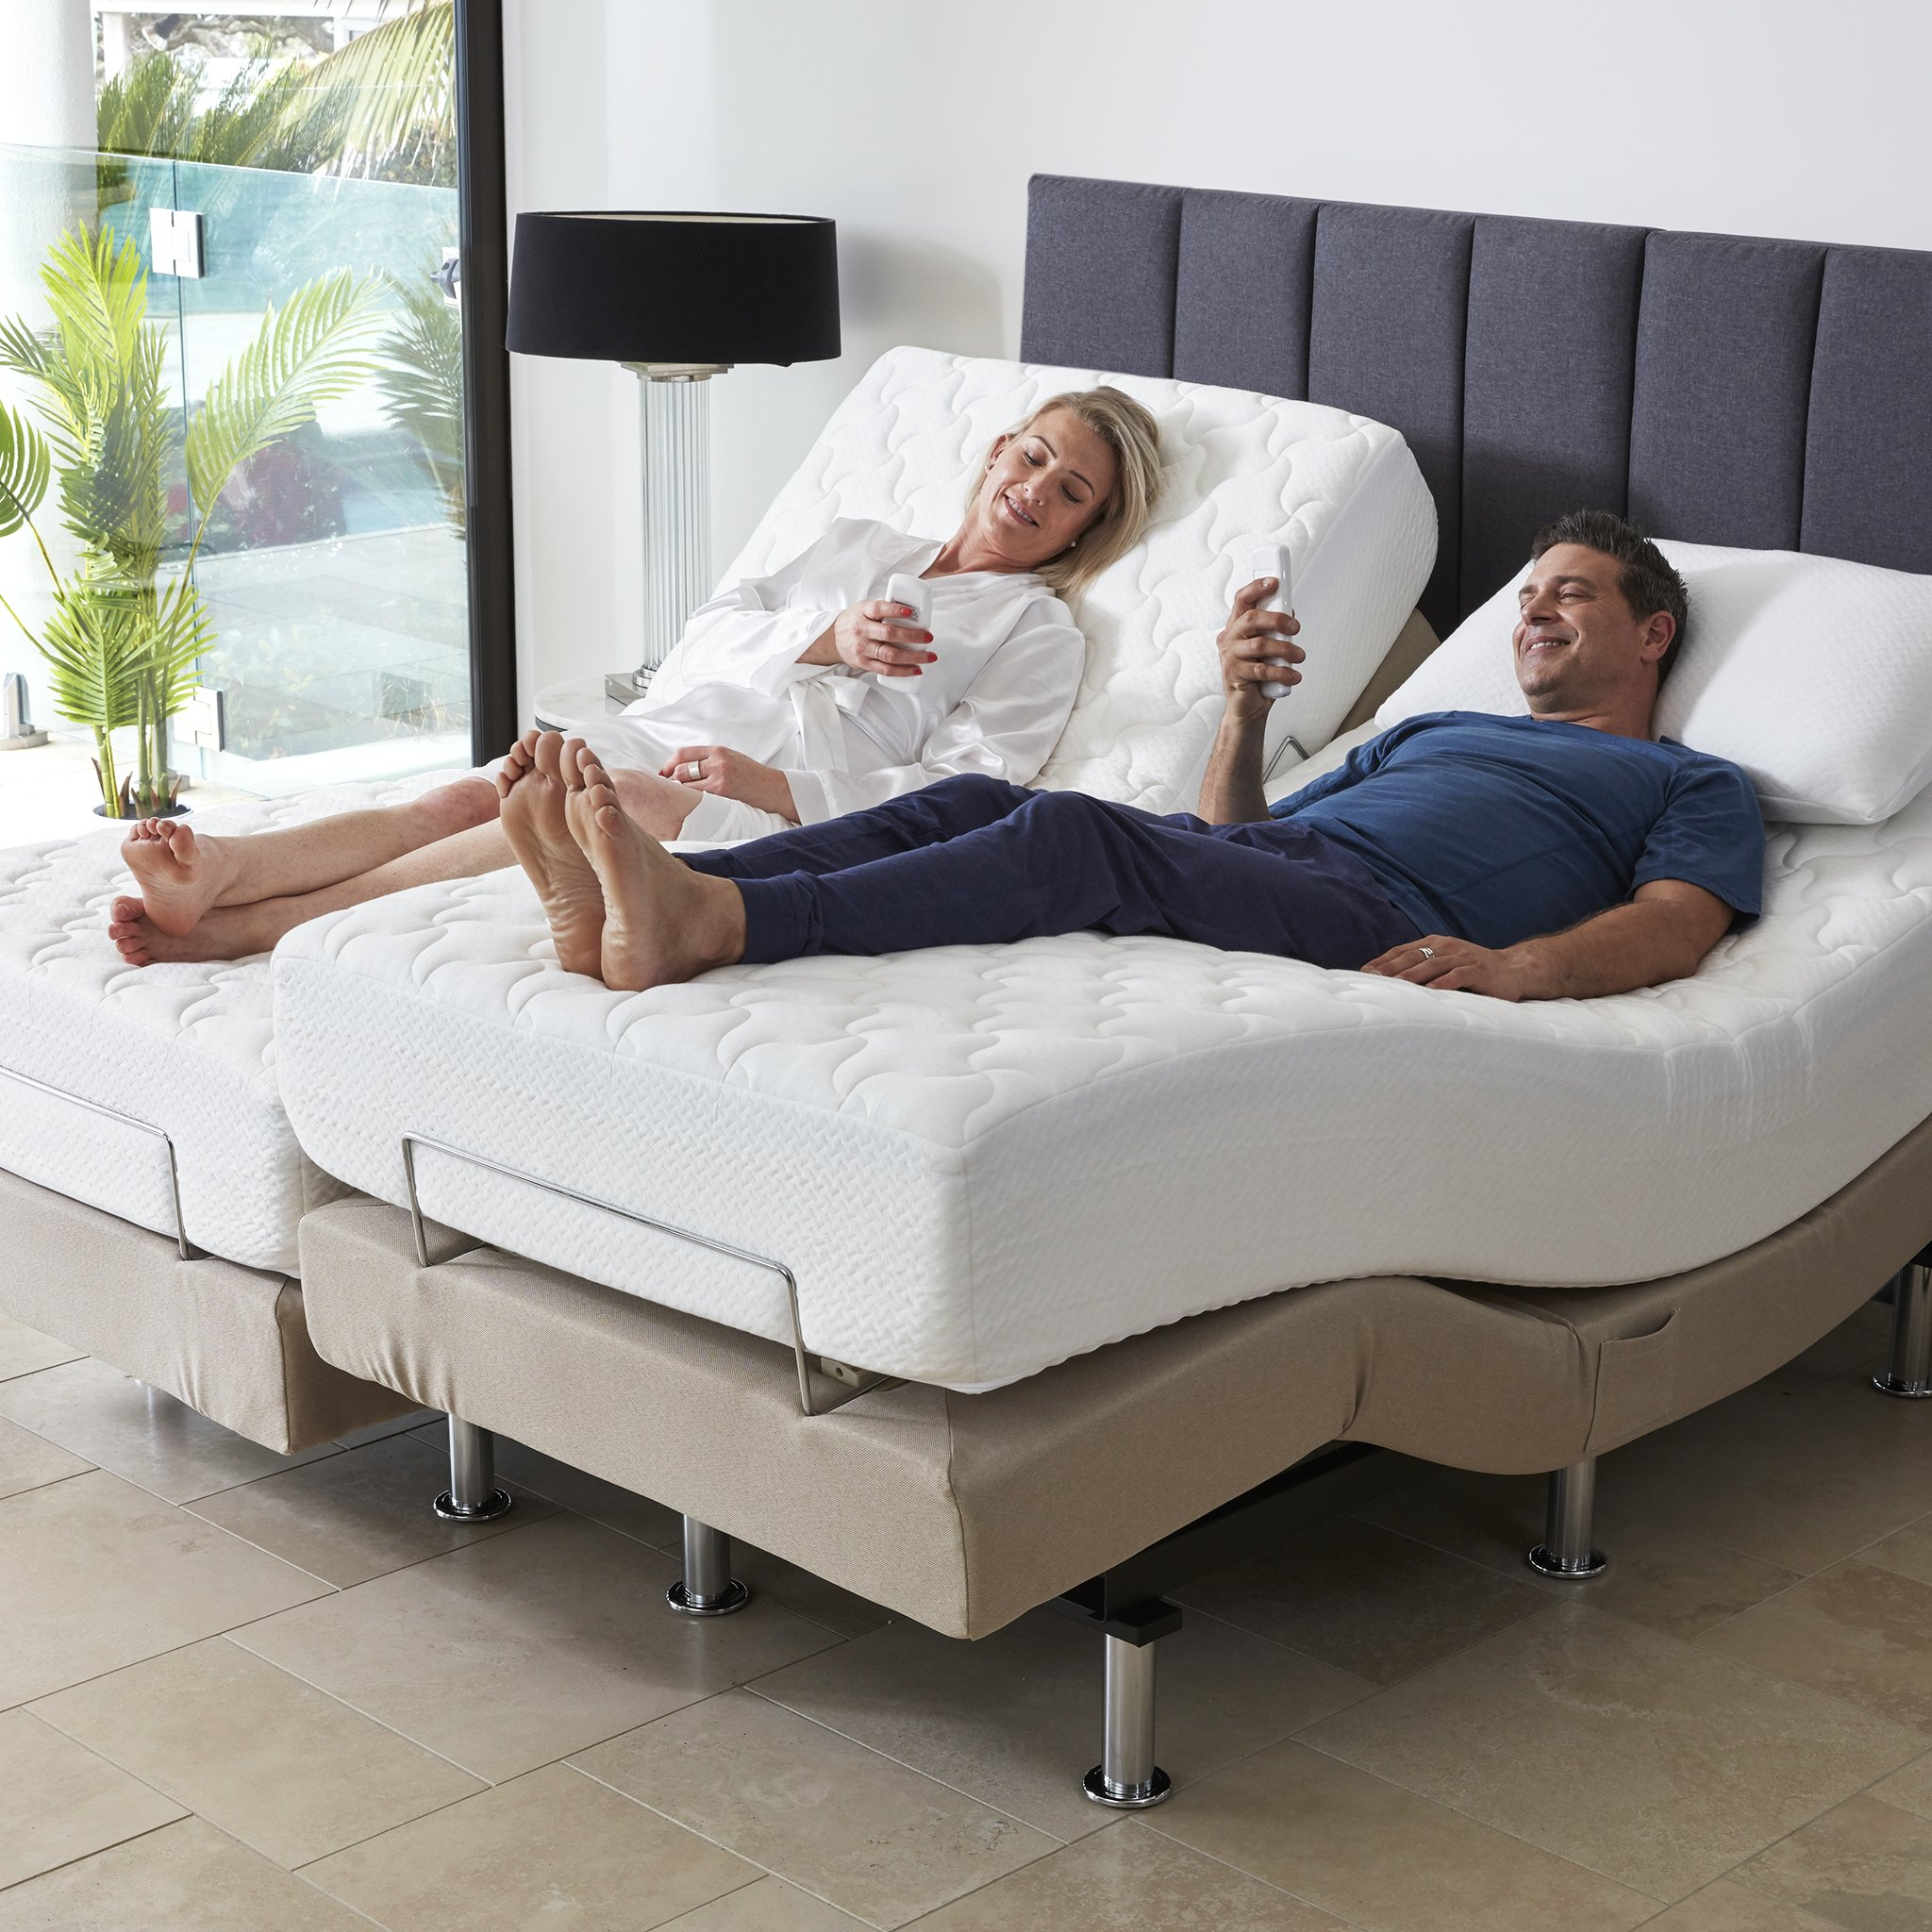 Adjustable mattresses with remote controls